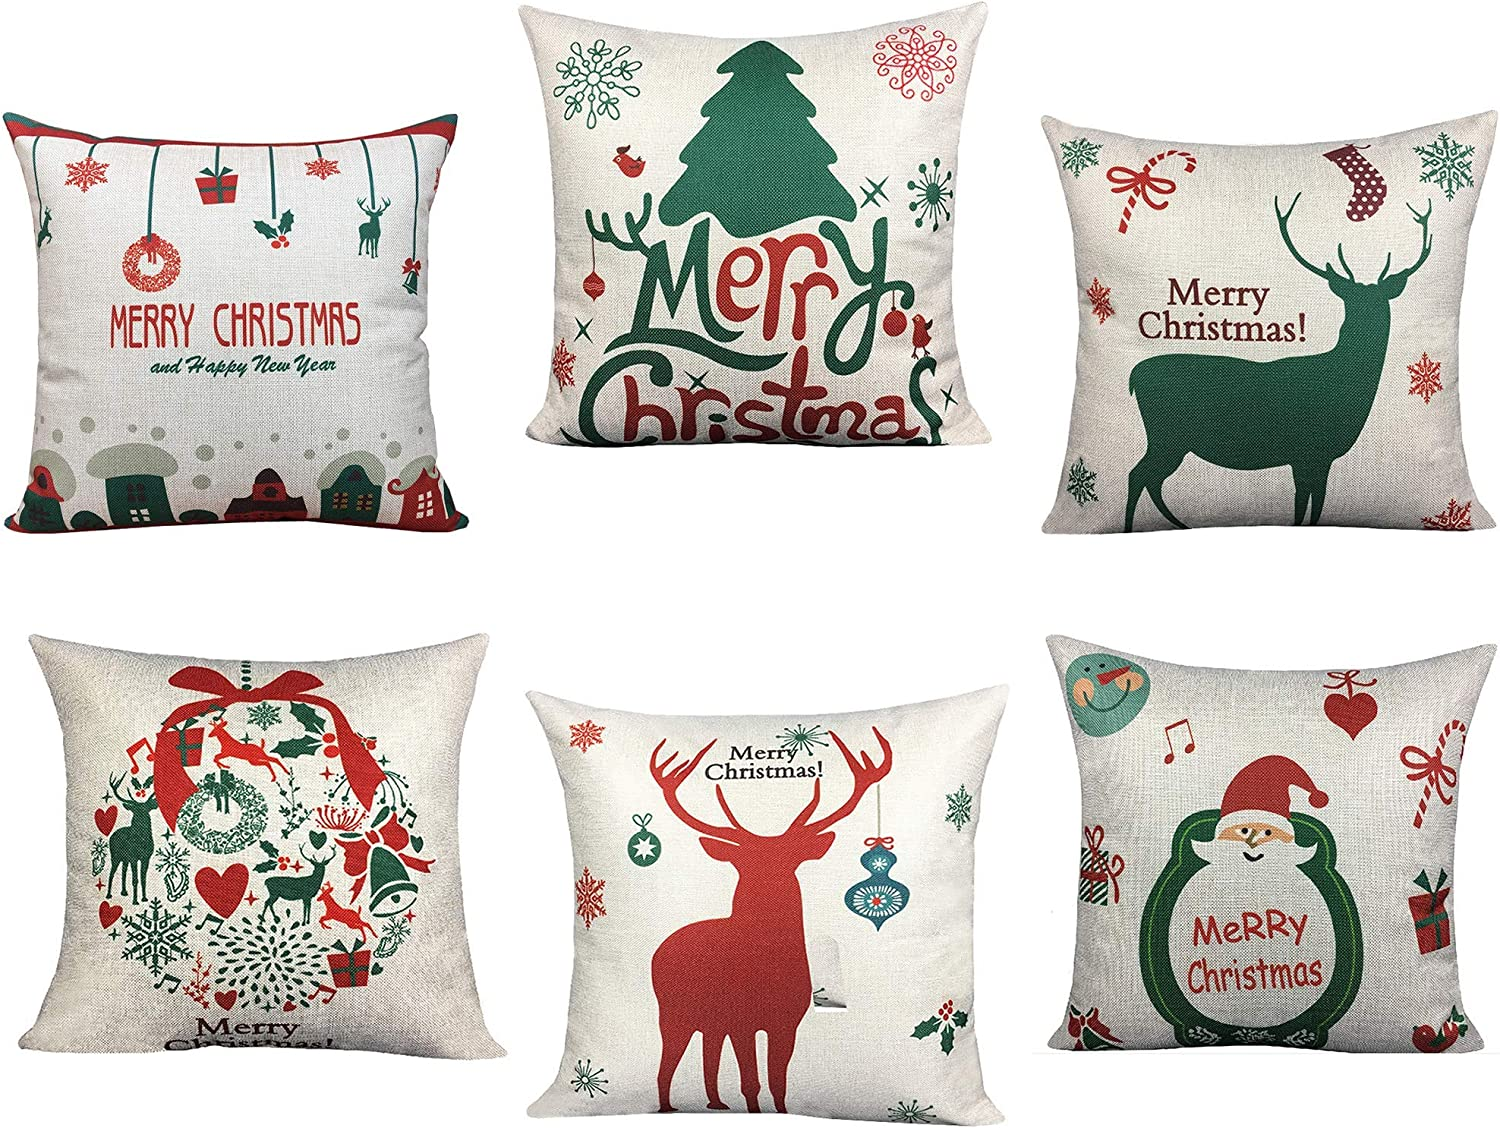 BLUETTEK 6 Packs Christmas Pillows Covers, Printed Santa Claus, Christmas  Tree, Deer, 18 X 18 Inch Christmas Decor Pillow Cases Cushion Covers for  Bed ...